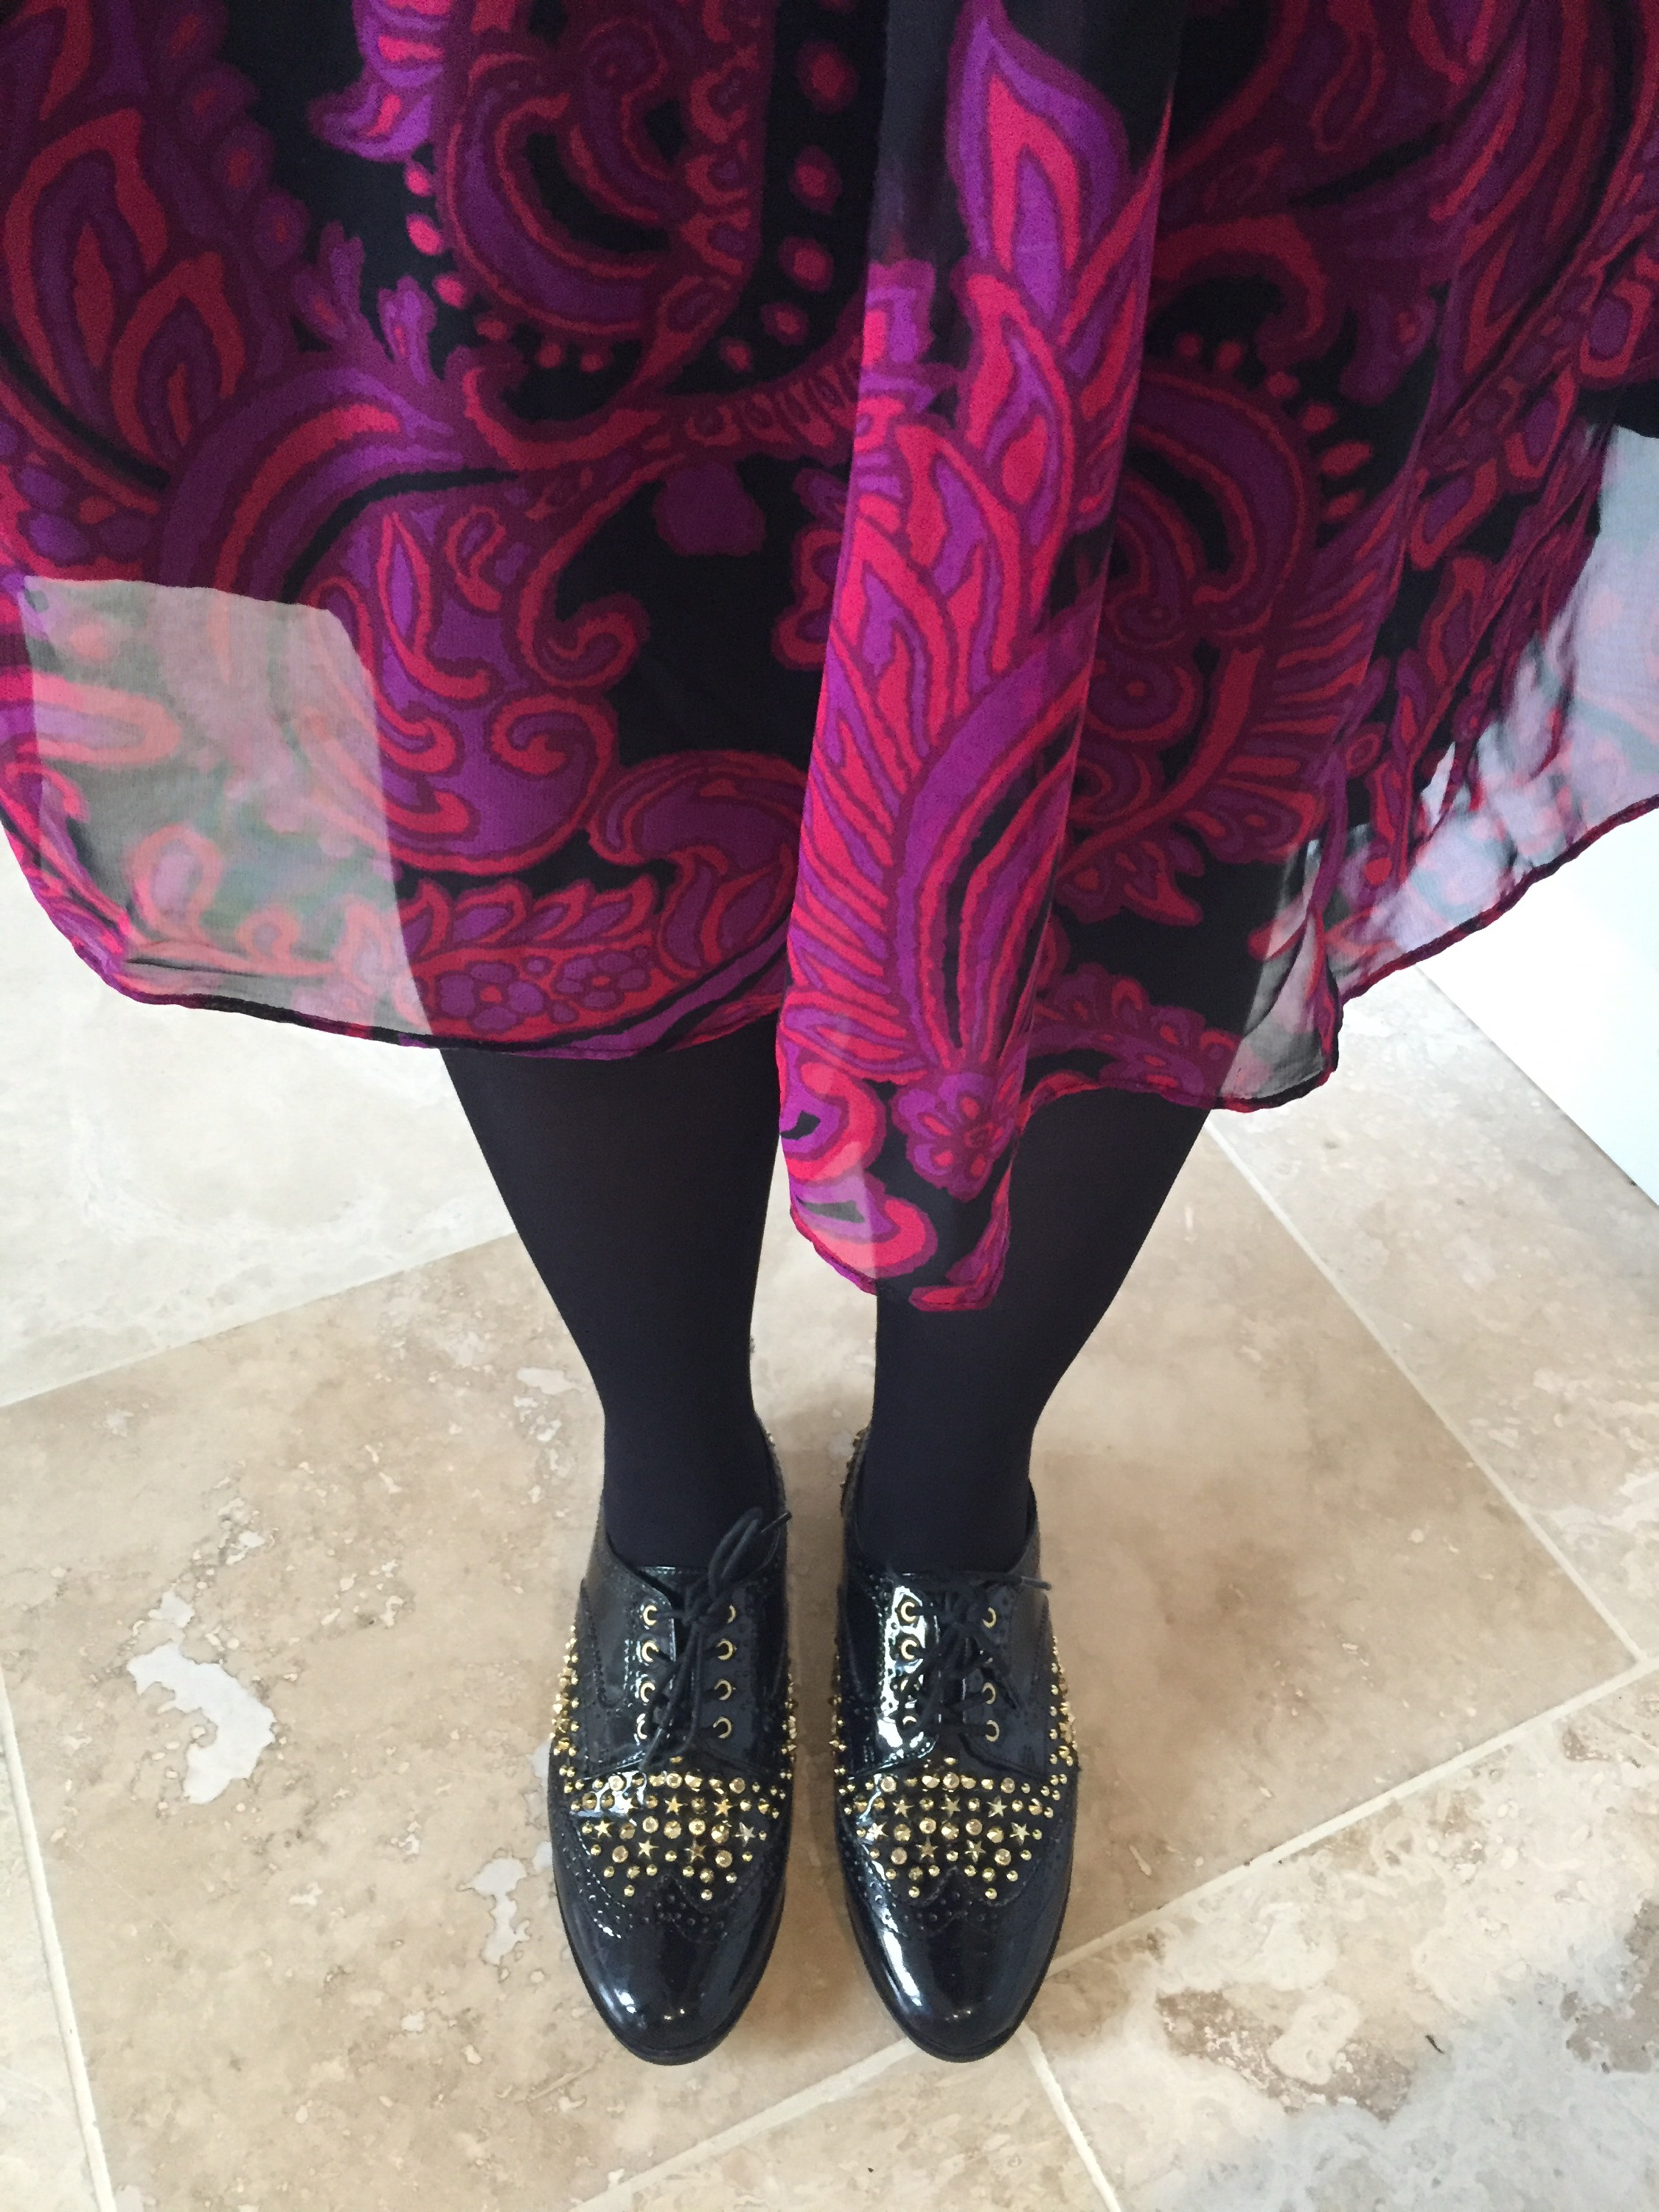 70s flower power studded brogues shoes look via Always a Blue Sky Girl blog